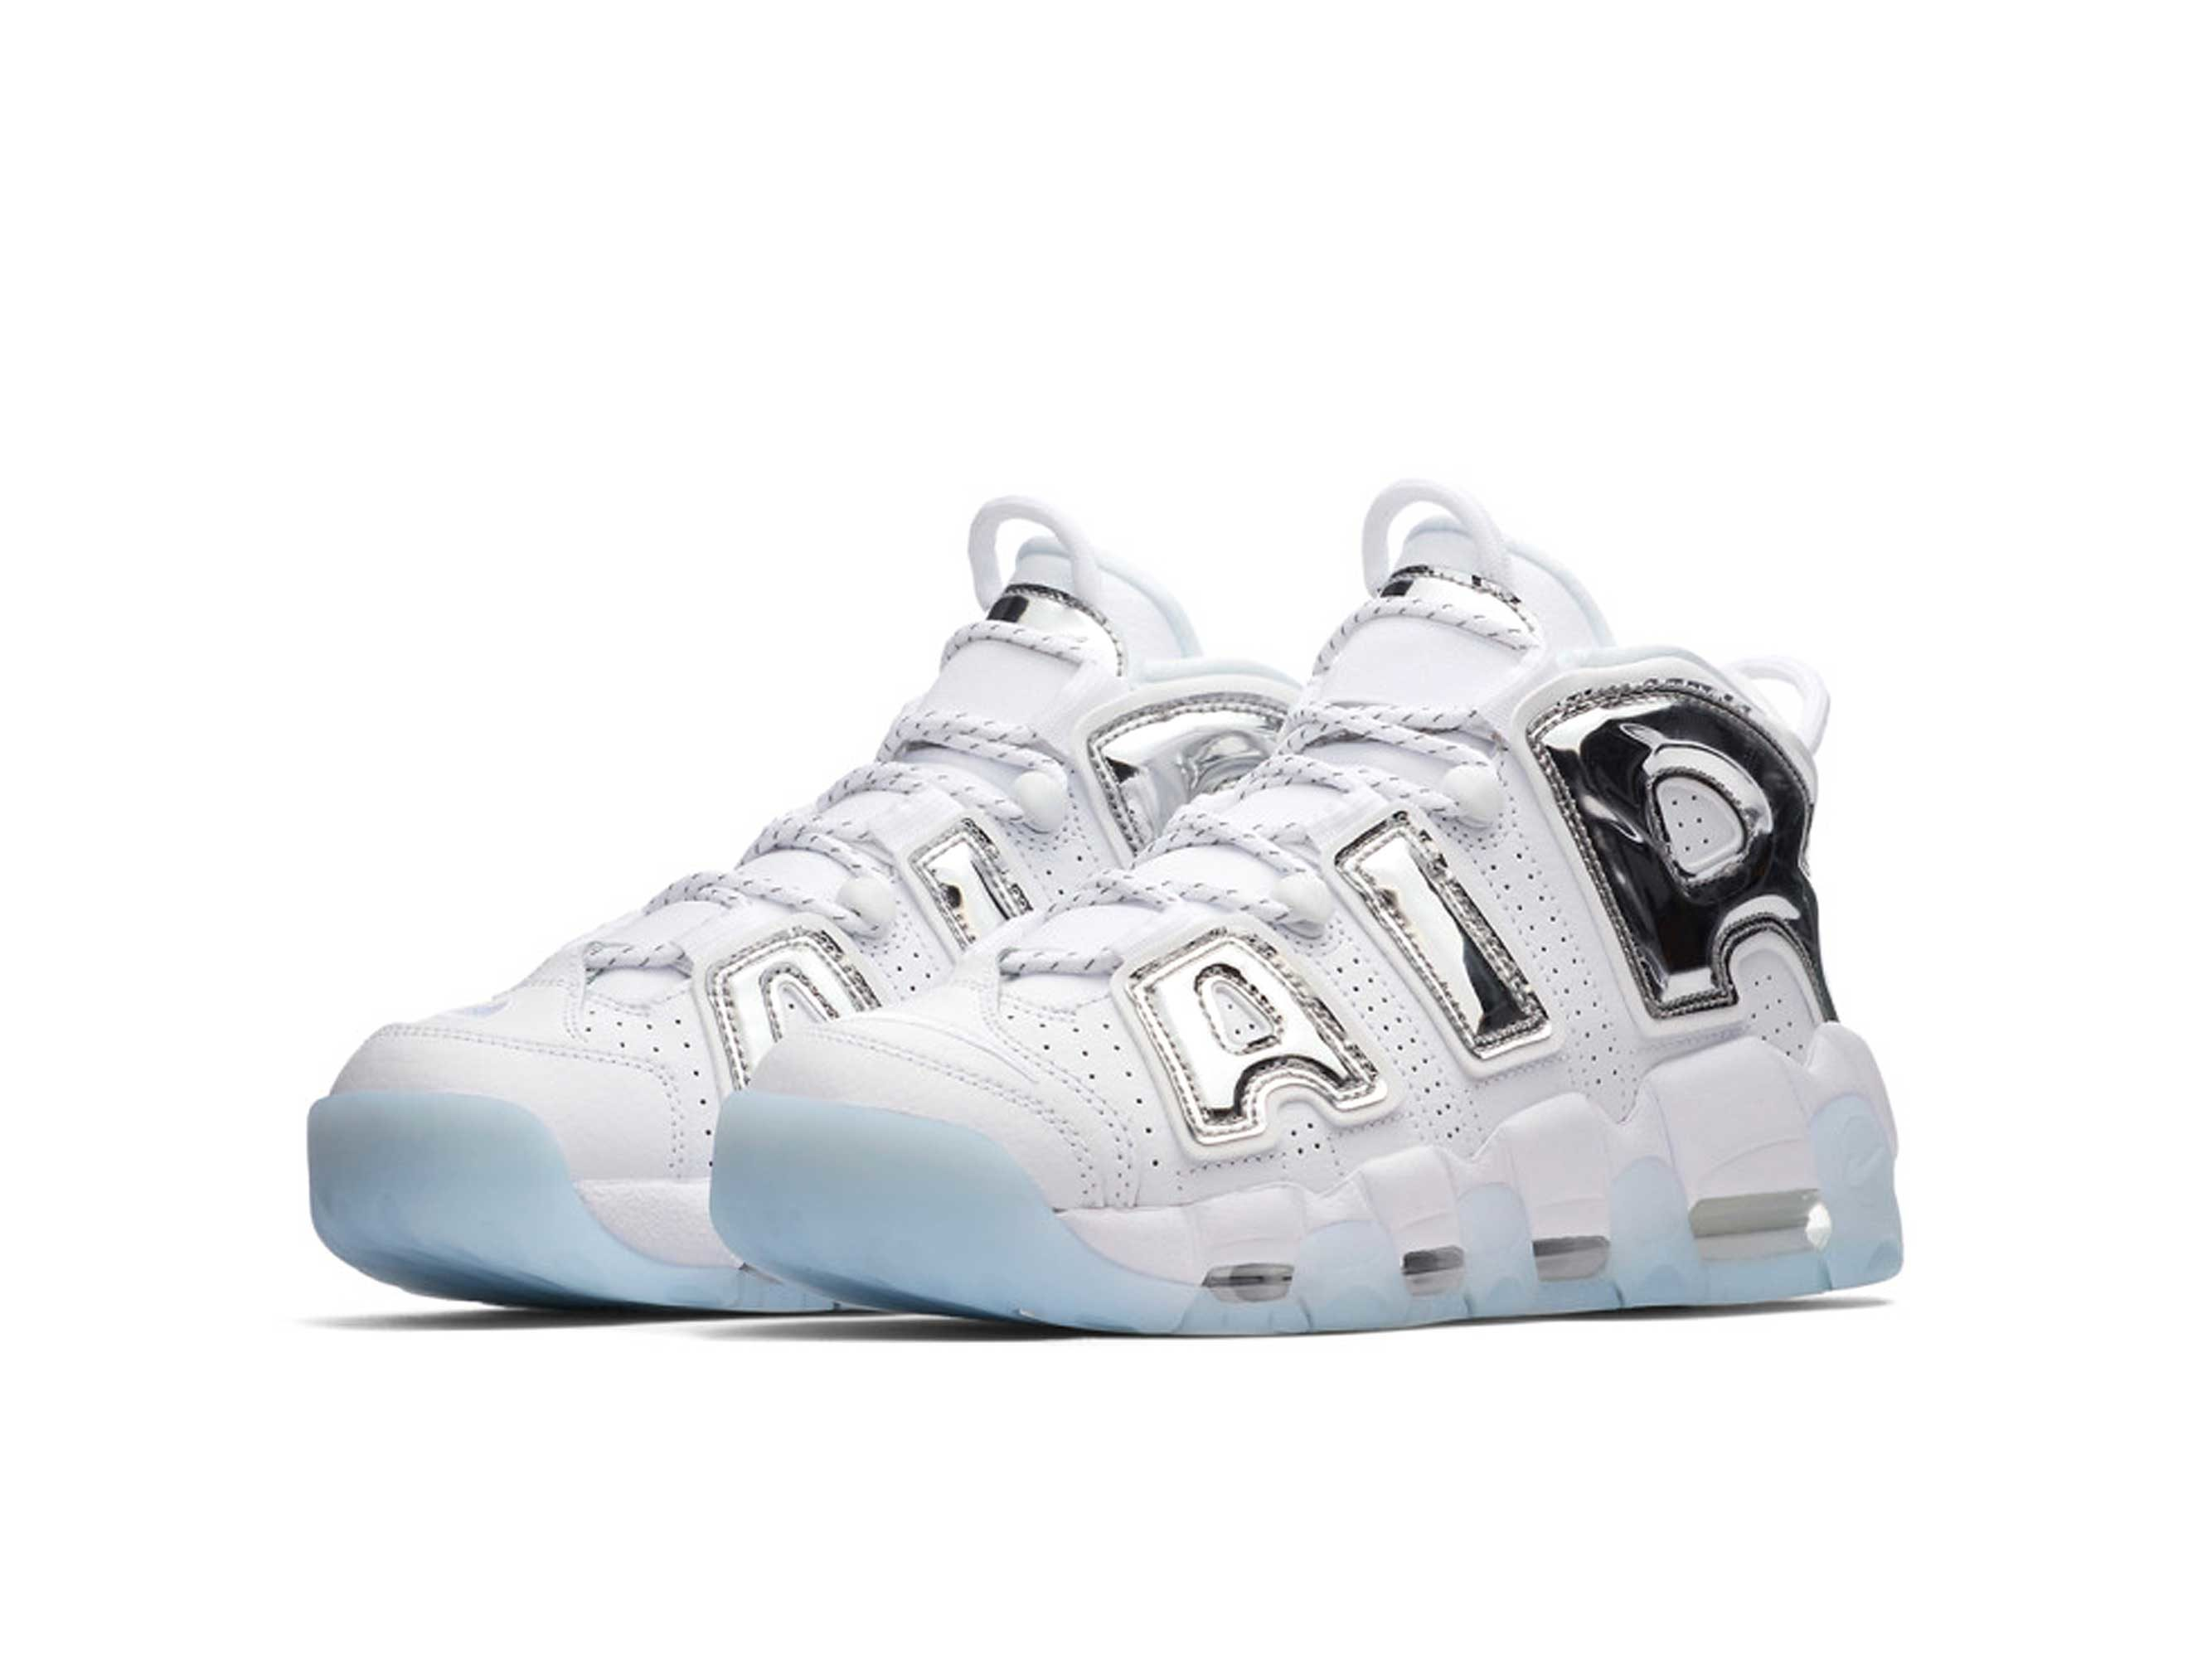 nike air more uptempo white chrome blue tint 917593_100 купить